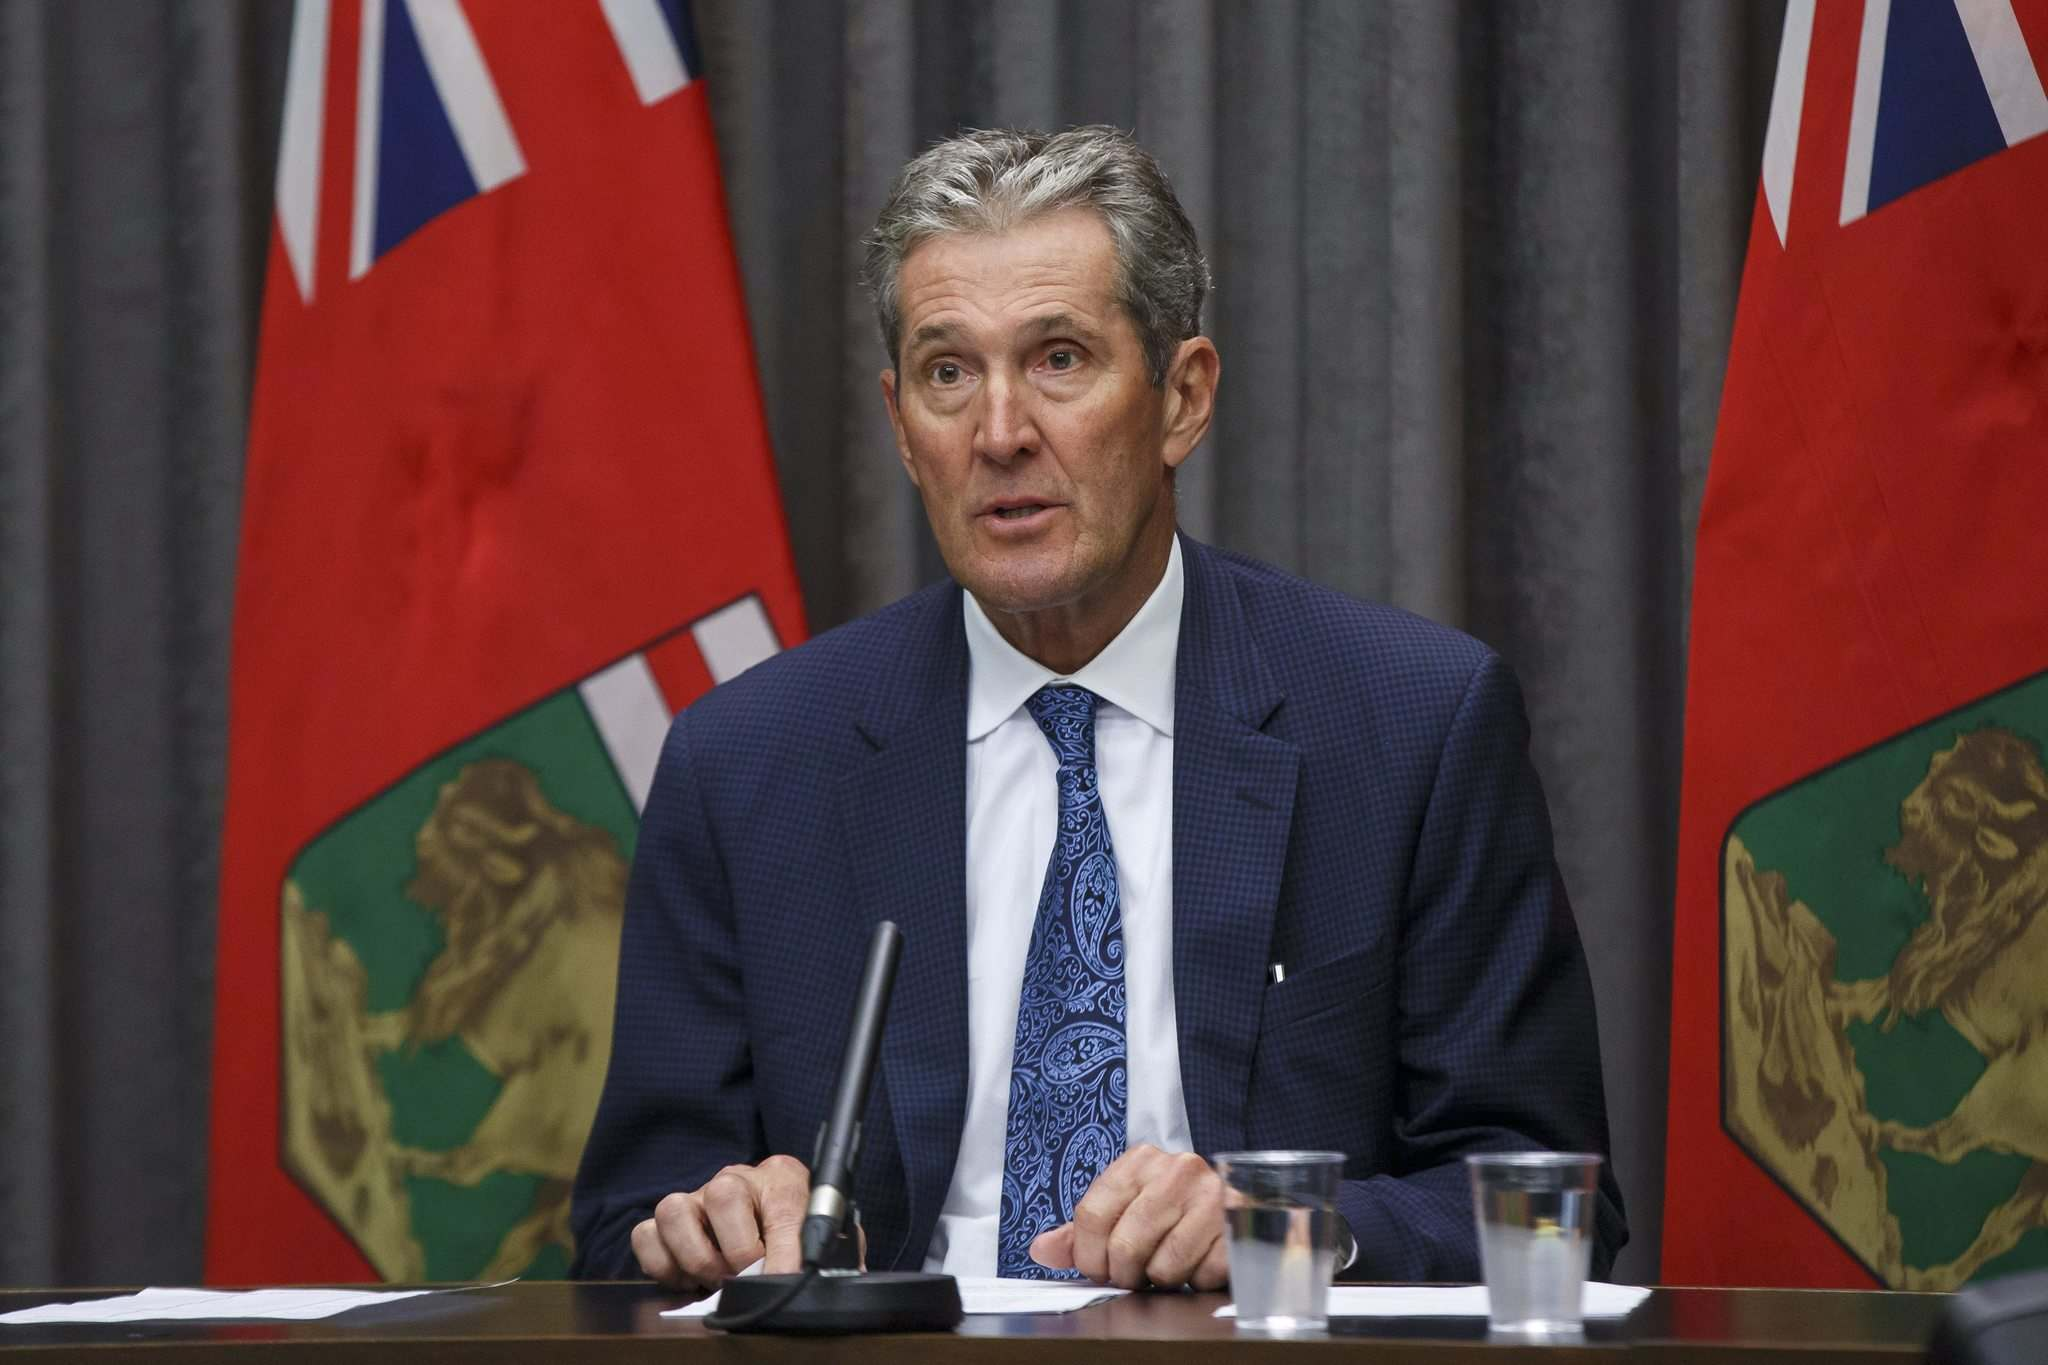 Premier Brian Pallister today announced that Phase 2 of the province's plan to reopen the economy and other aspects of society will take effect Monday. (Mike Deal / Winnipeg Free Press files)